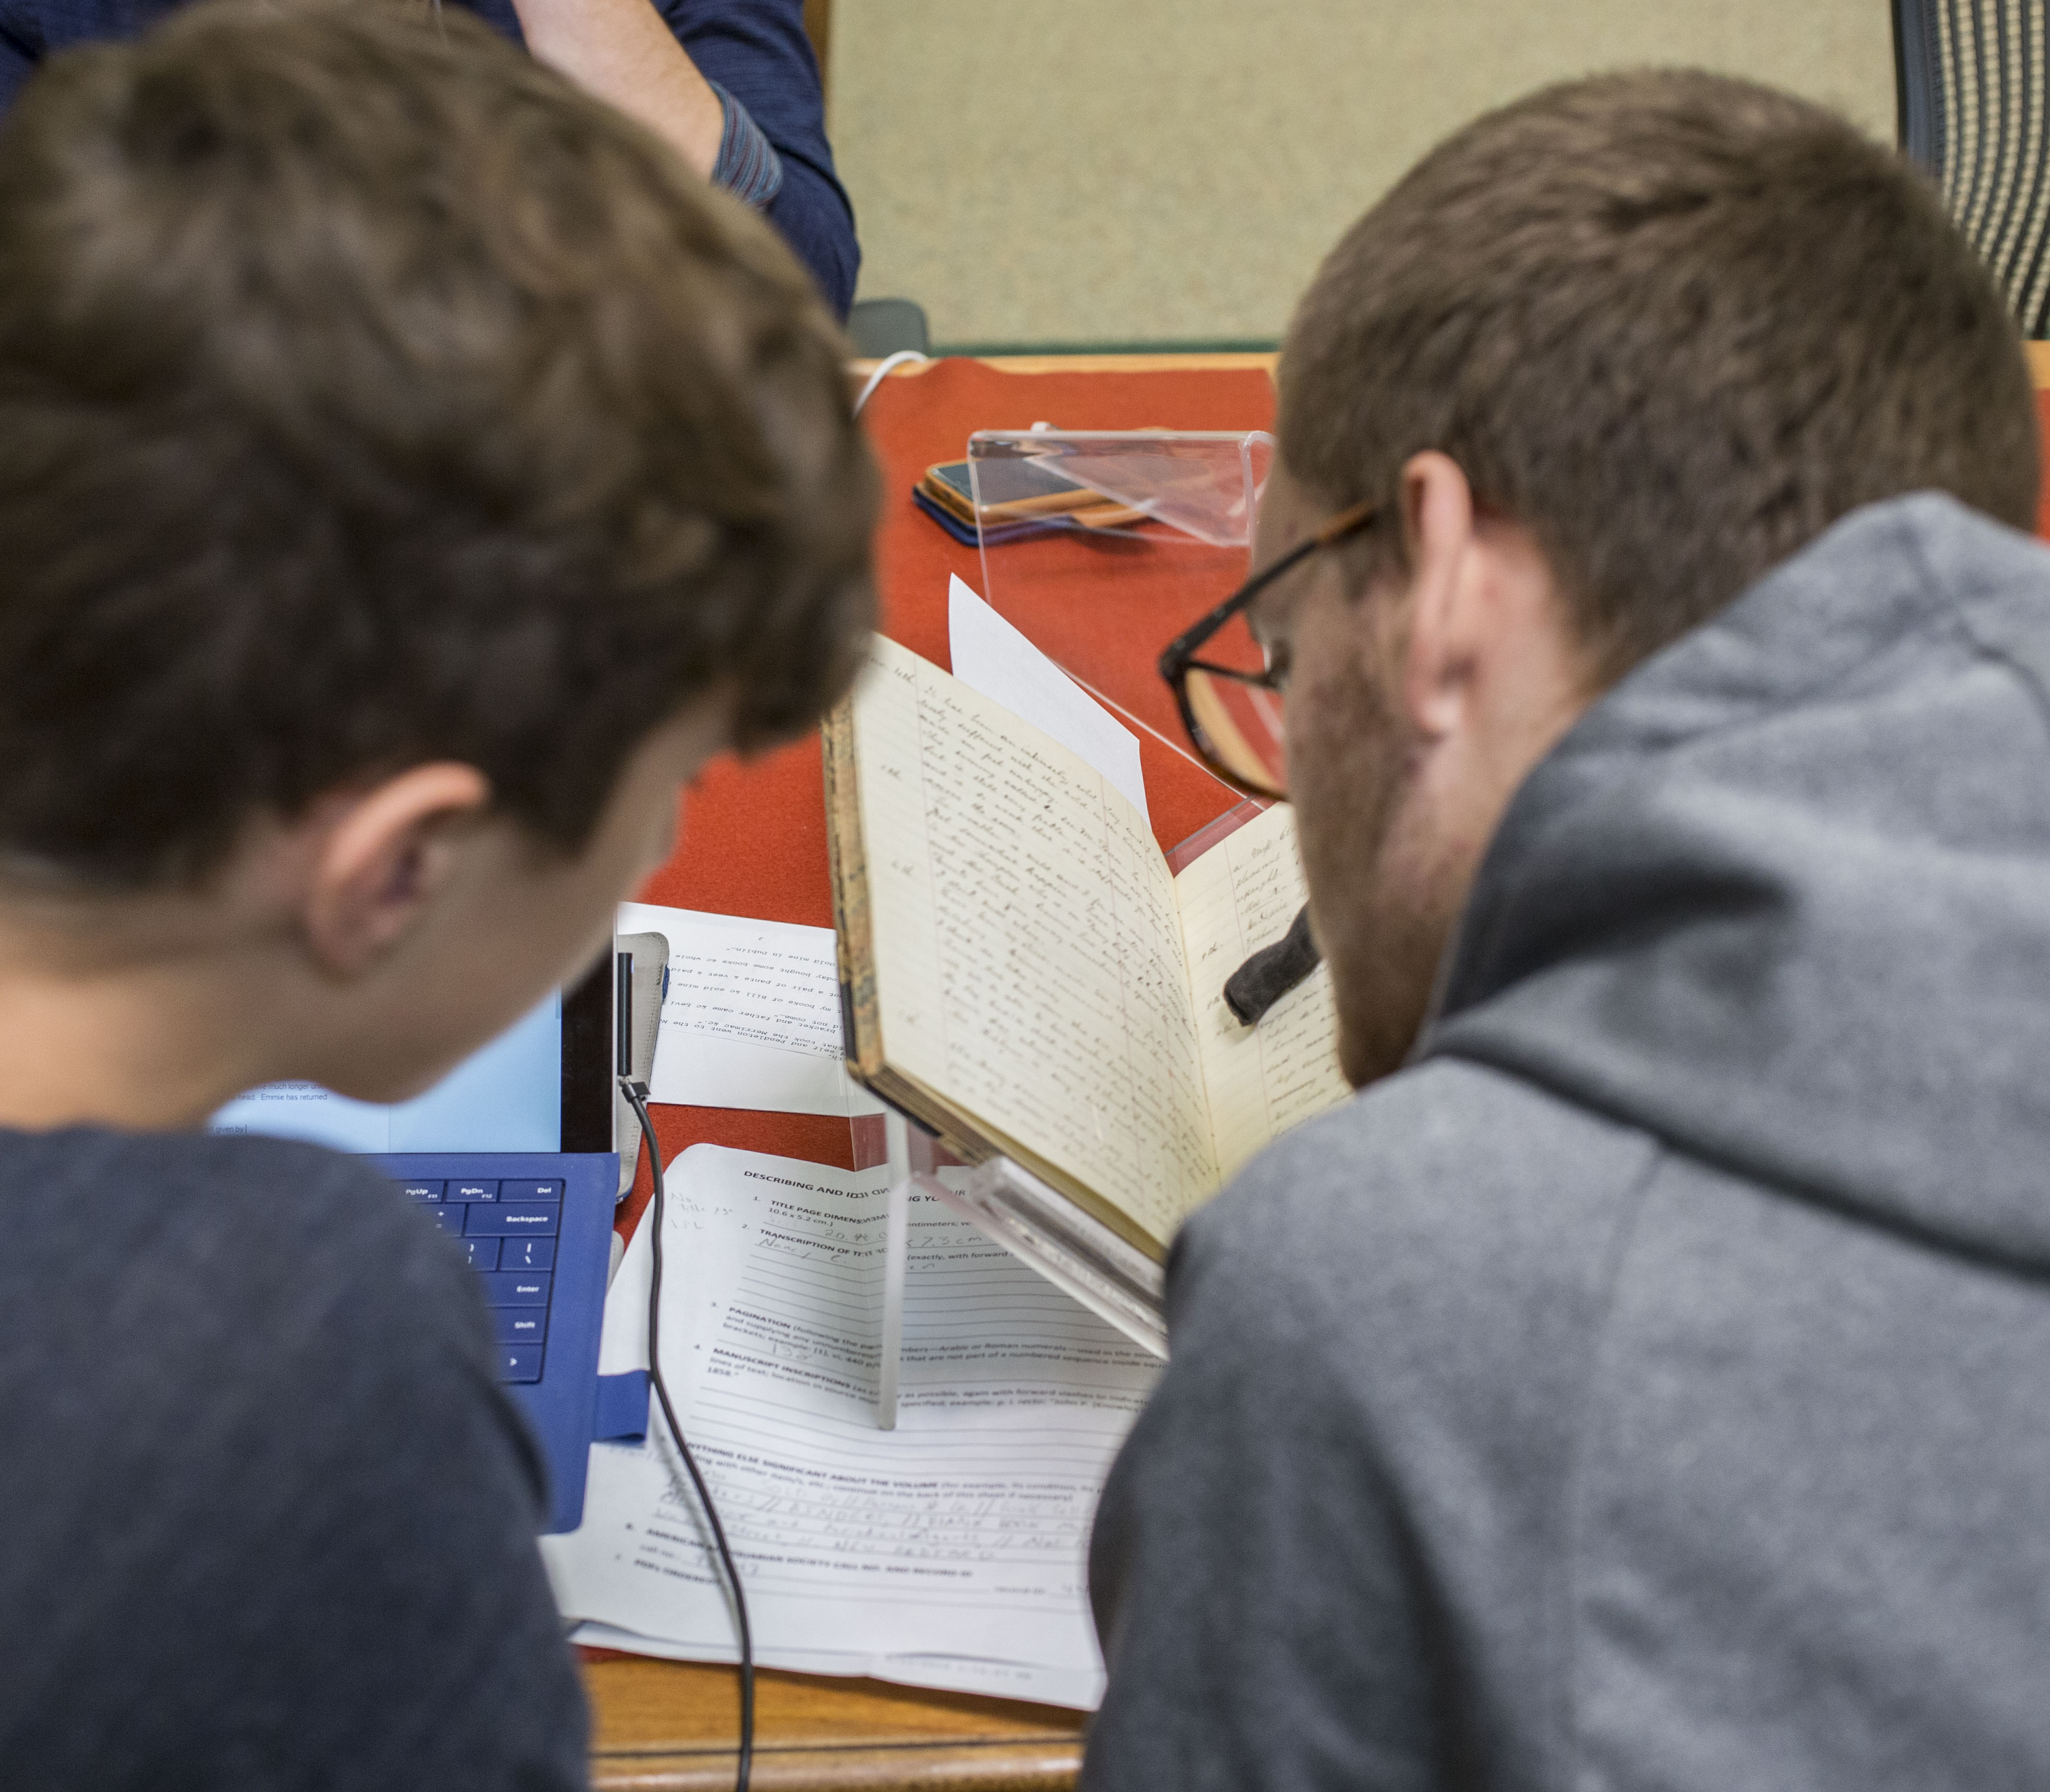 two seminar participants looking at a primary source in a cradle